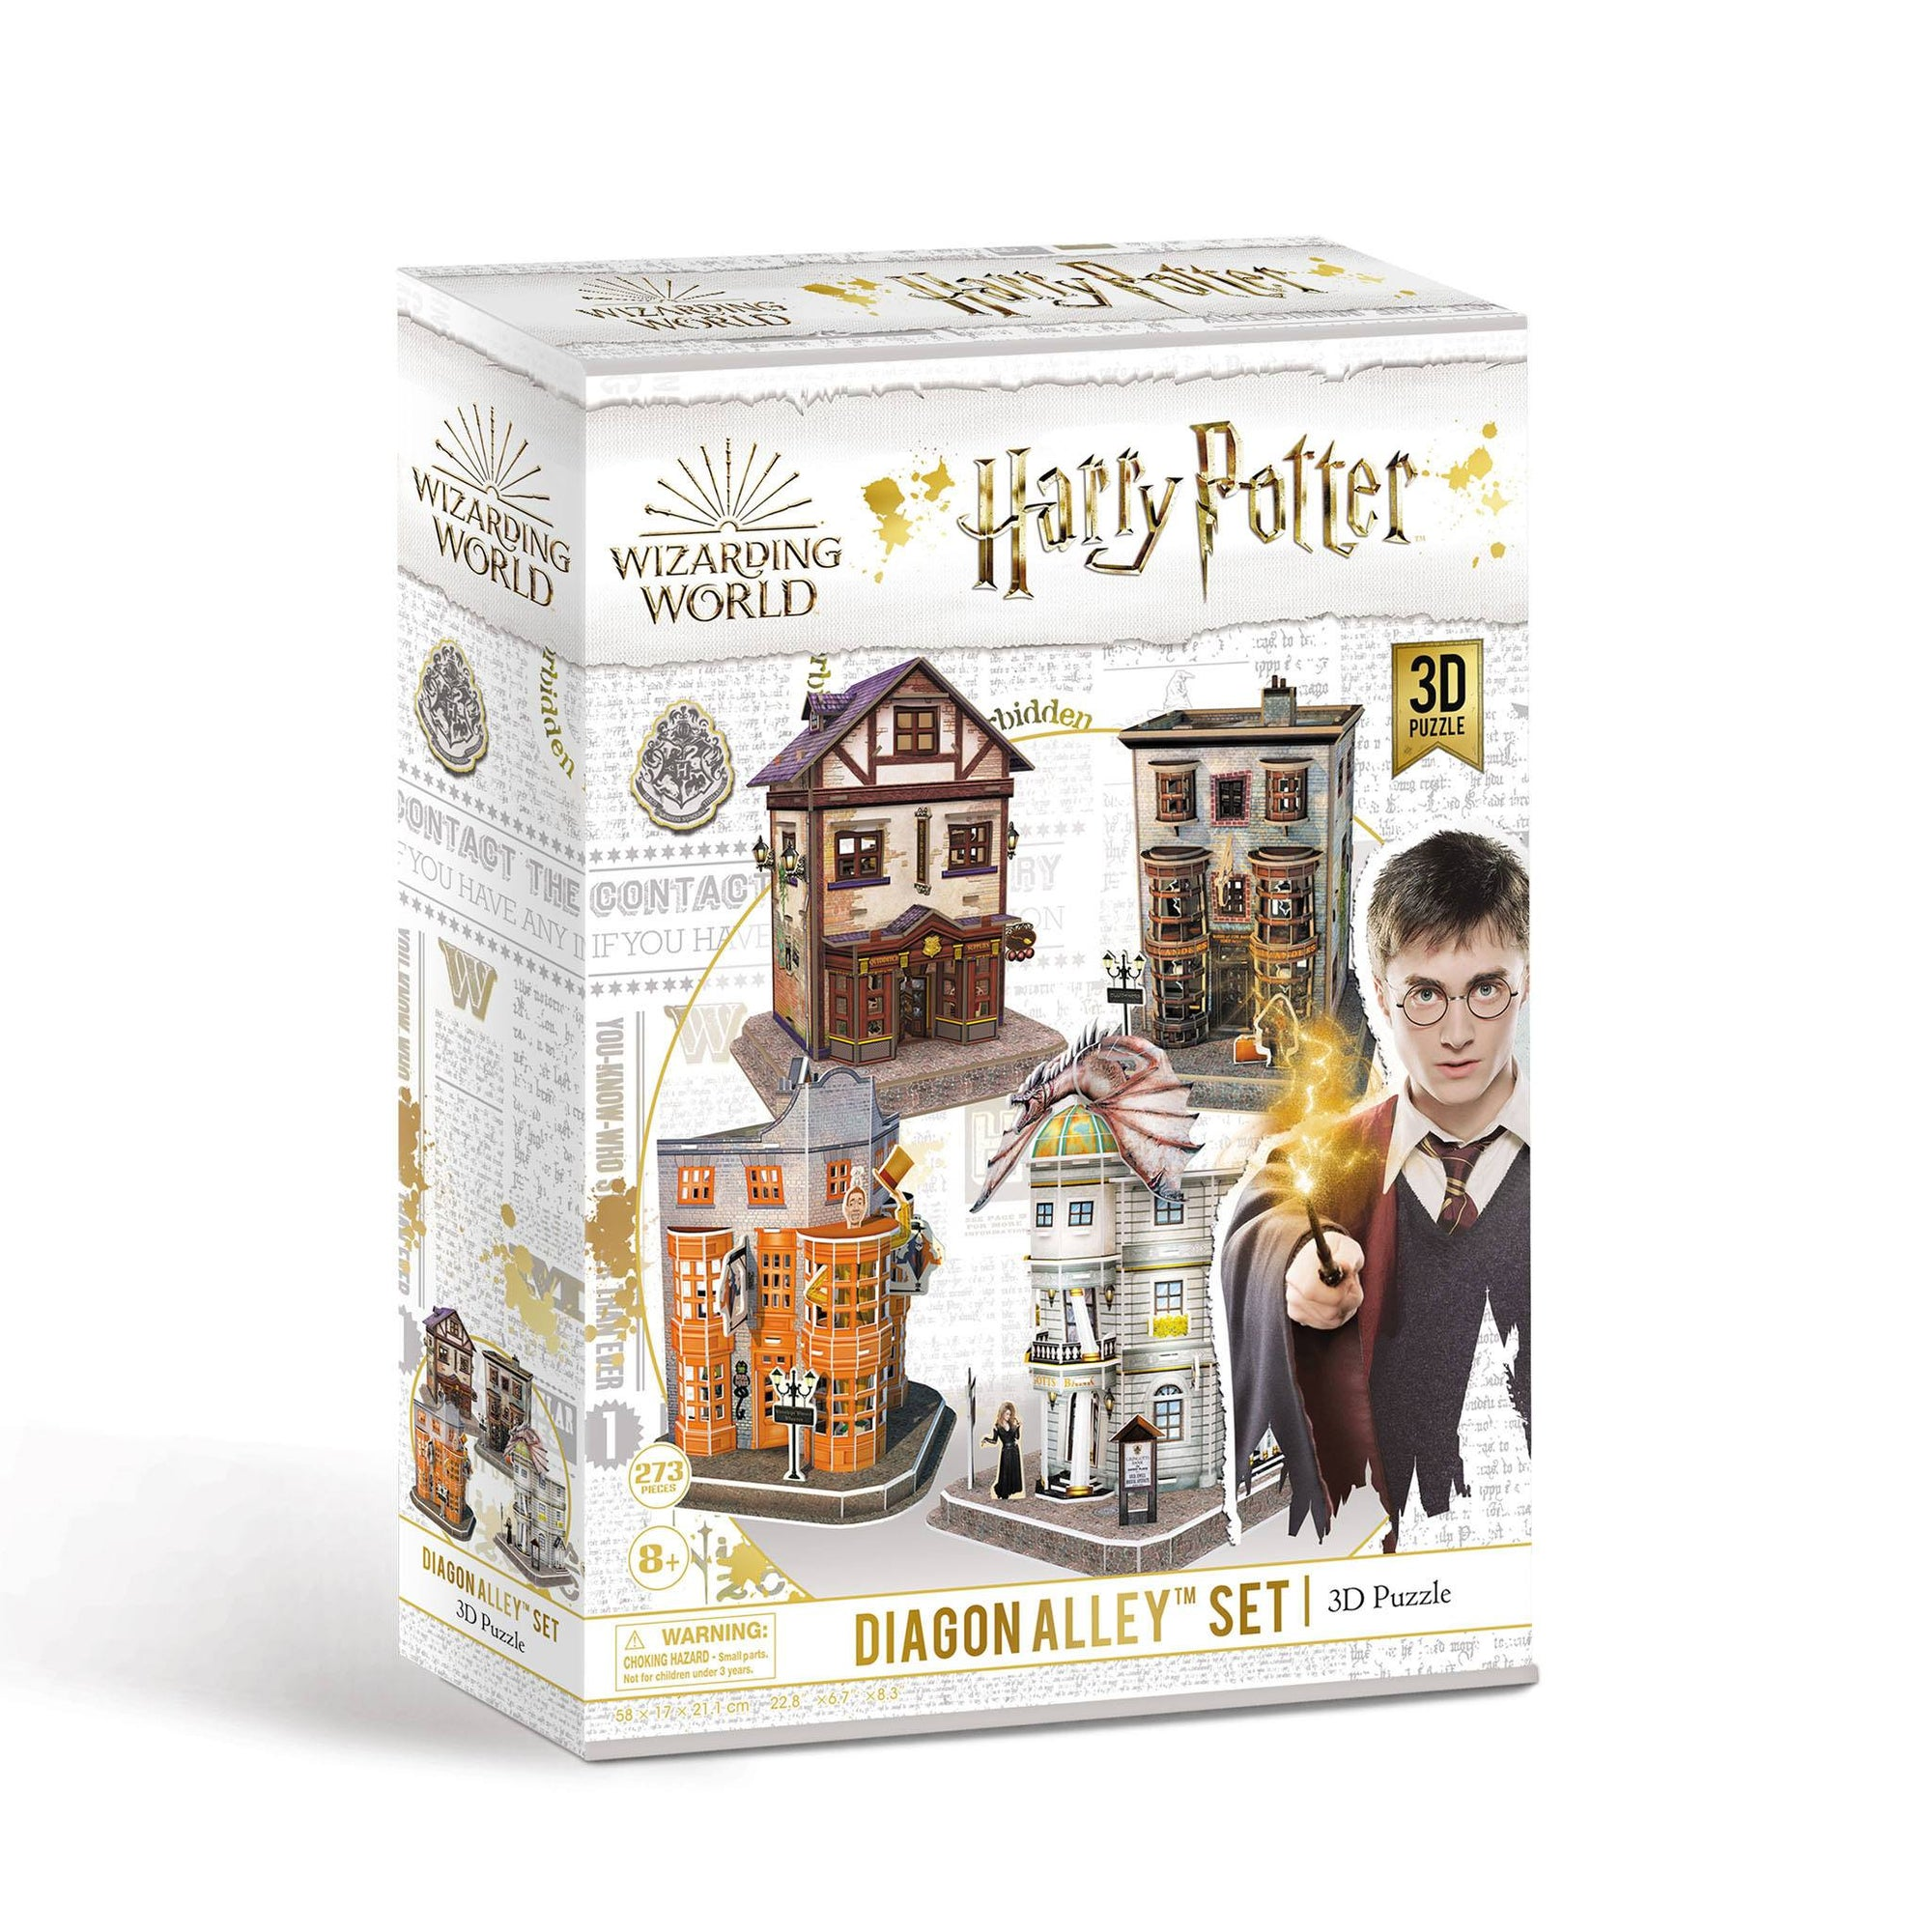 PUZZLE 3D CHEMIN DE TRAVERSE (273 pièces) - HARRY POTTER